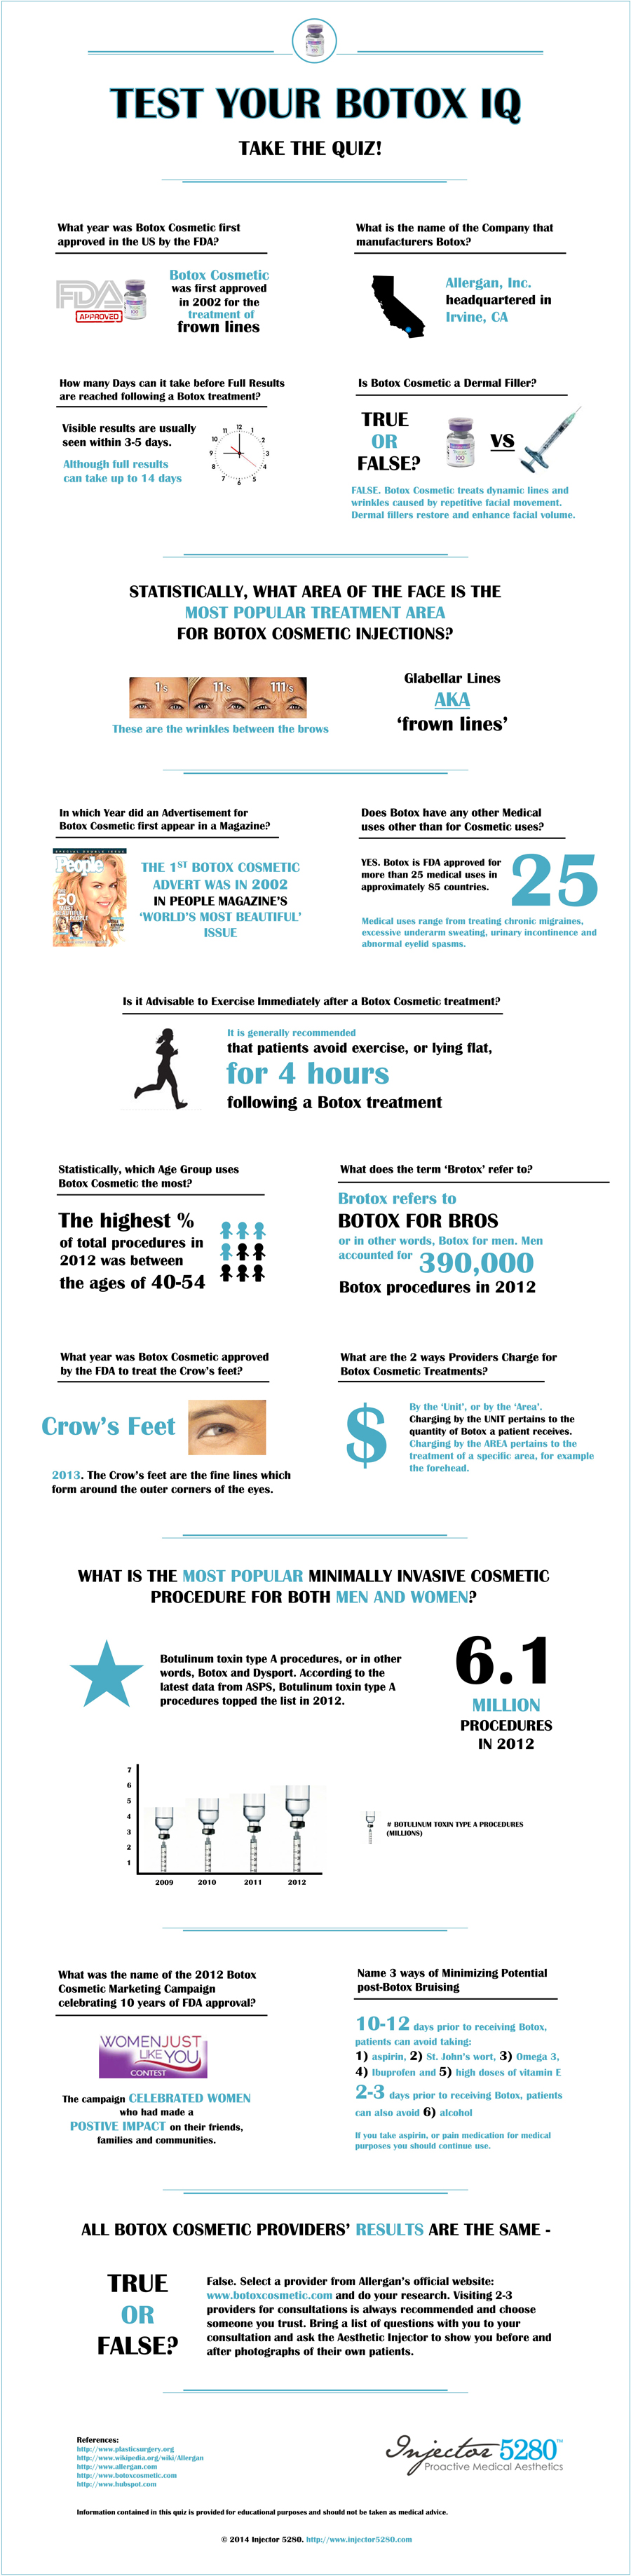 botox infographic denver co